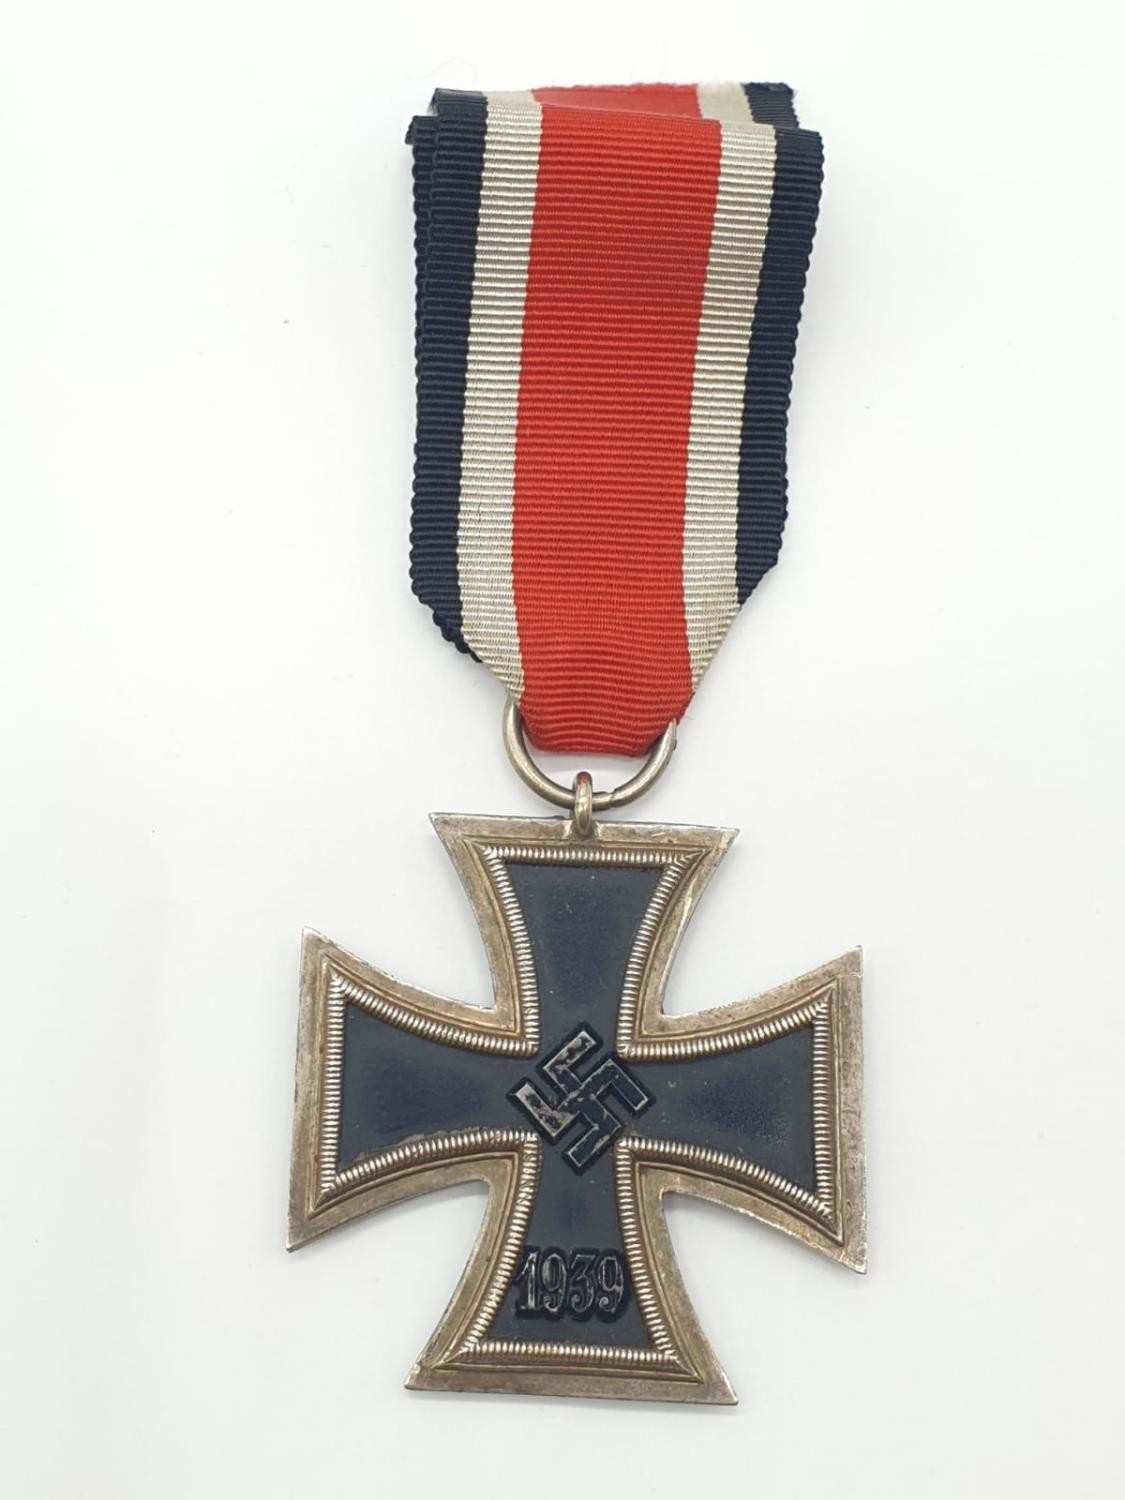 WW2 German Iron Cross 2nd Class. No makers marks but a typical Steinhaur & Luck example none the - Image 2 of 3